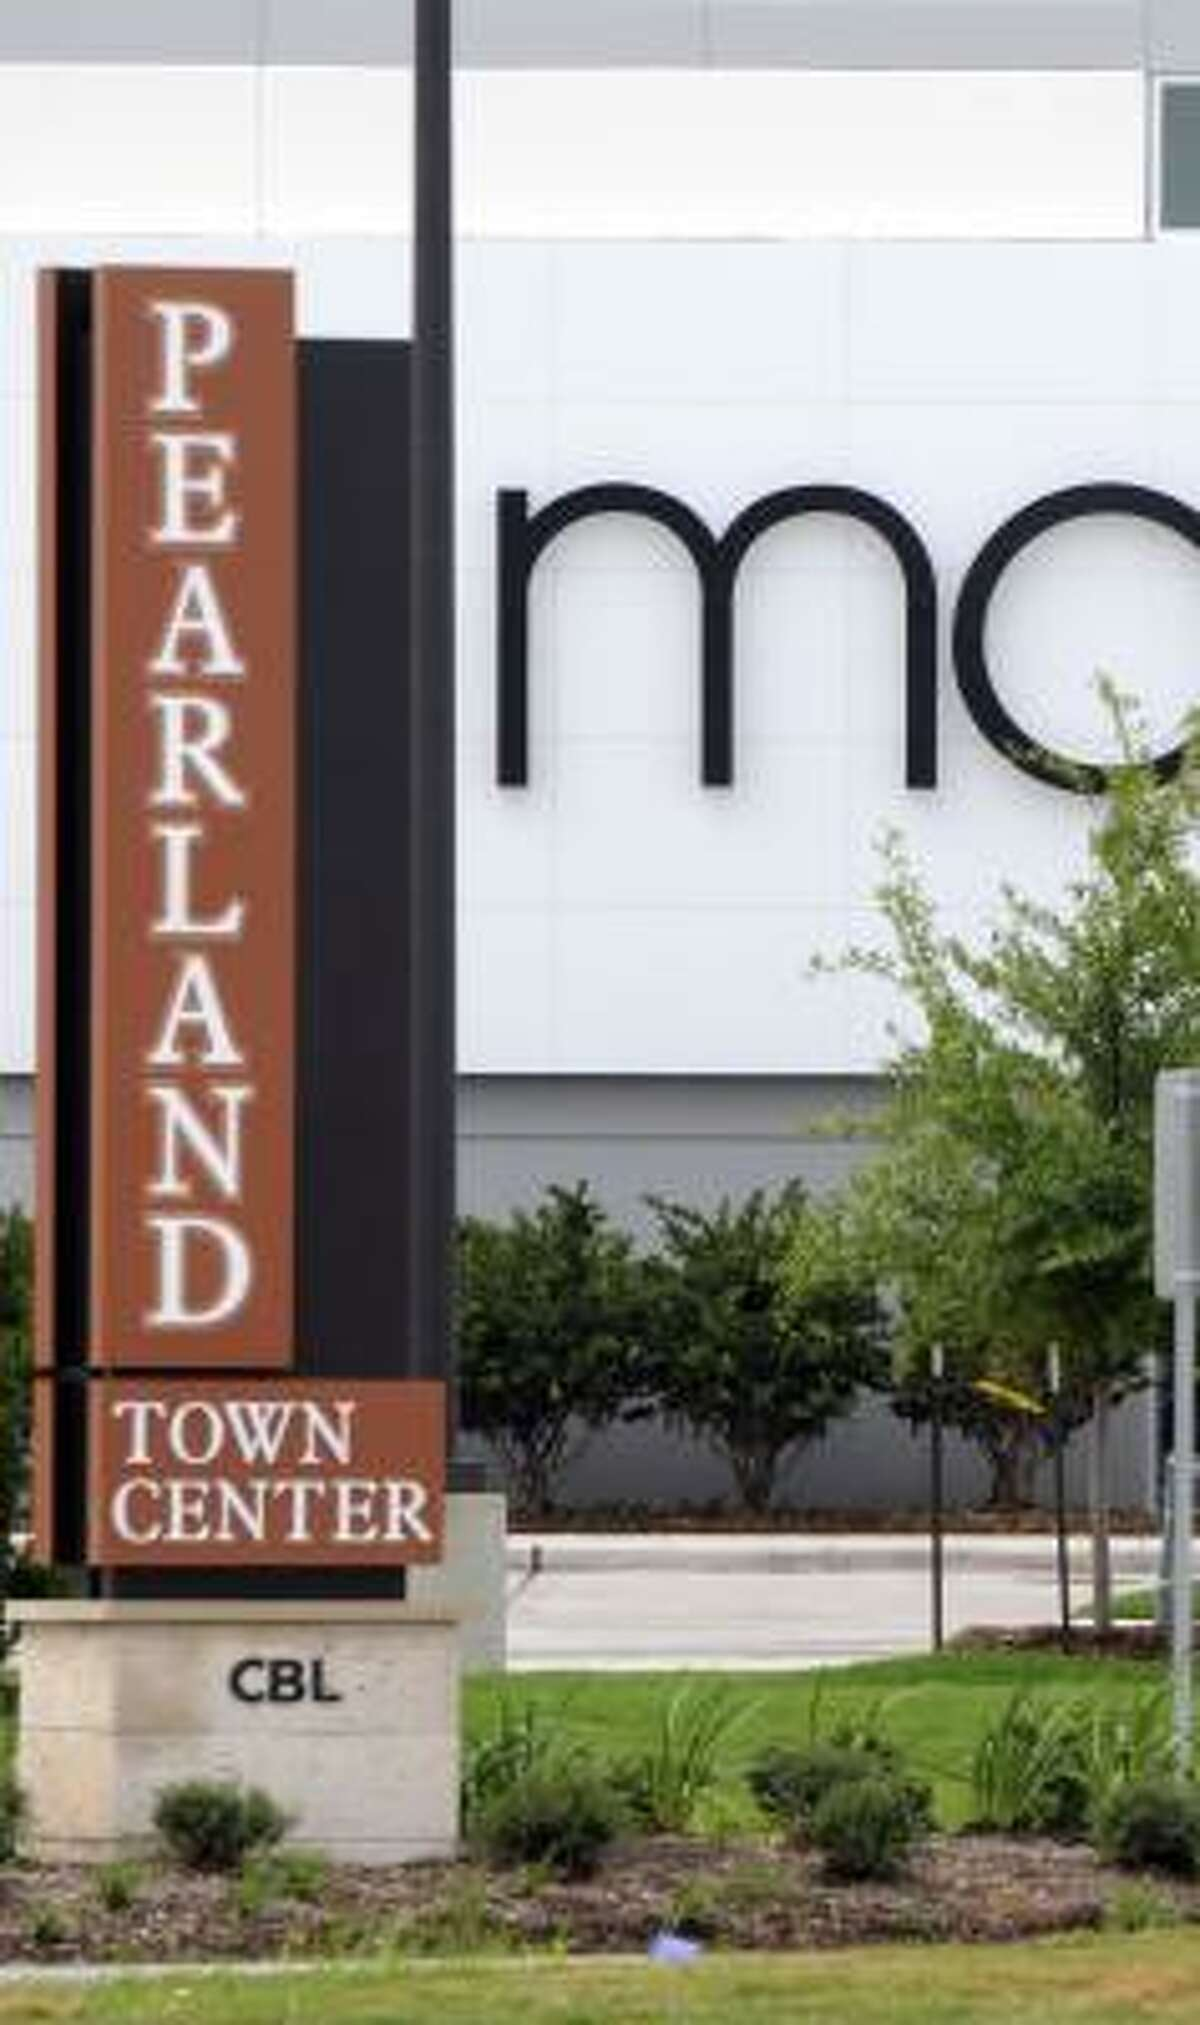 Macy's took advantage of the chance to open a store in the expanding Pearland area.